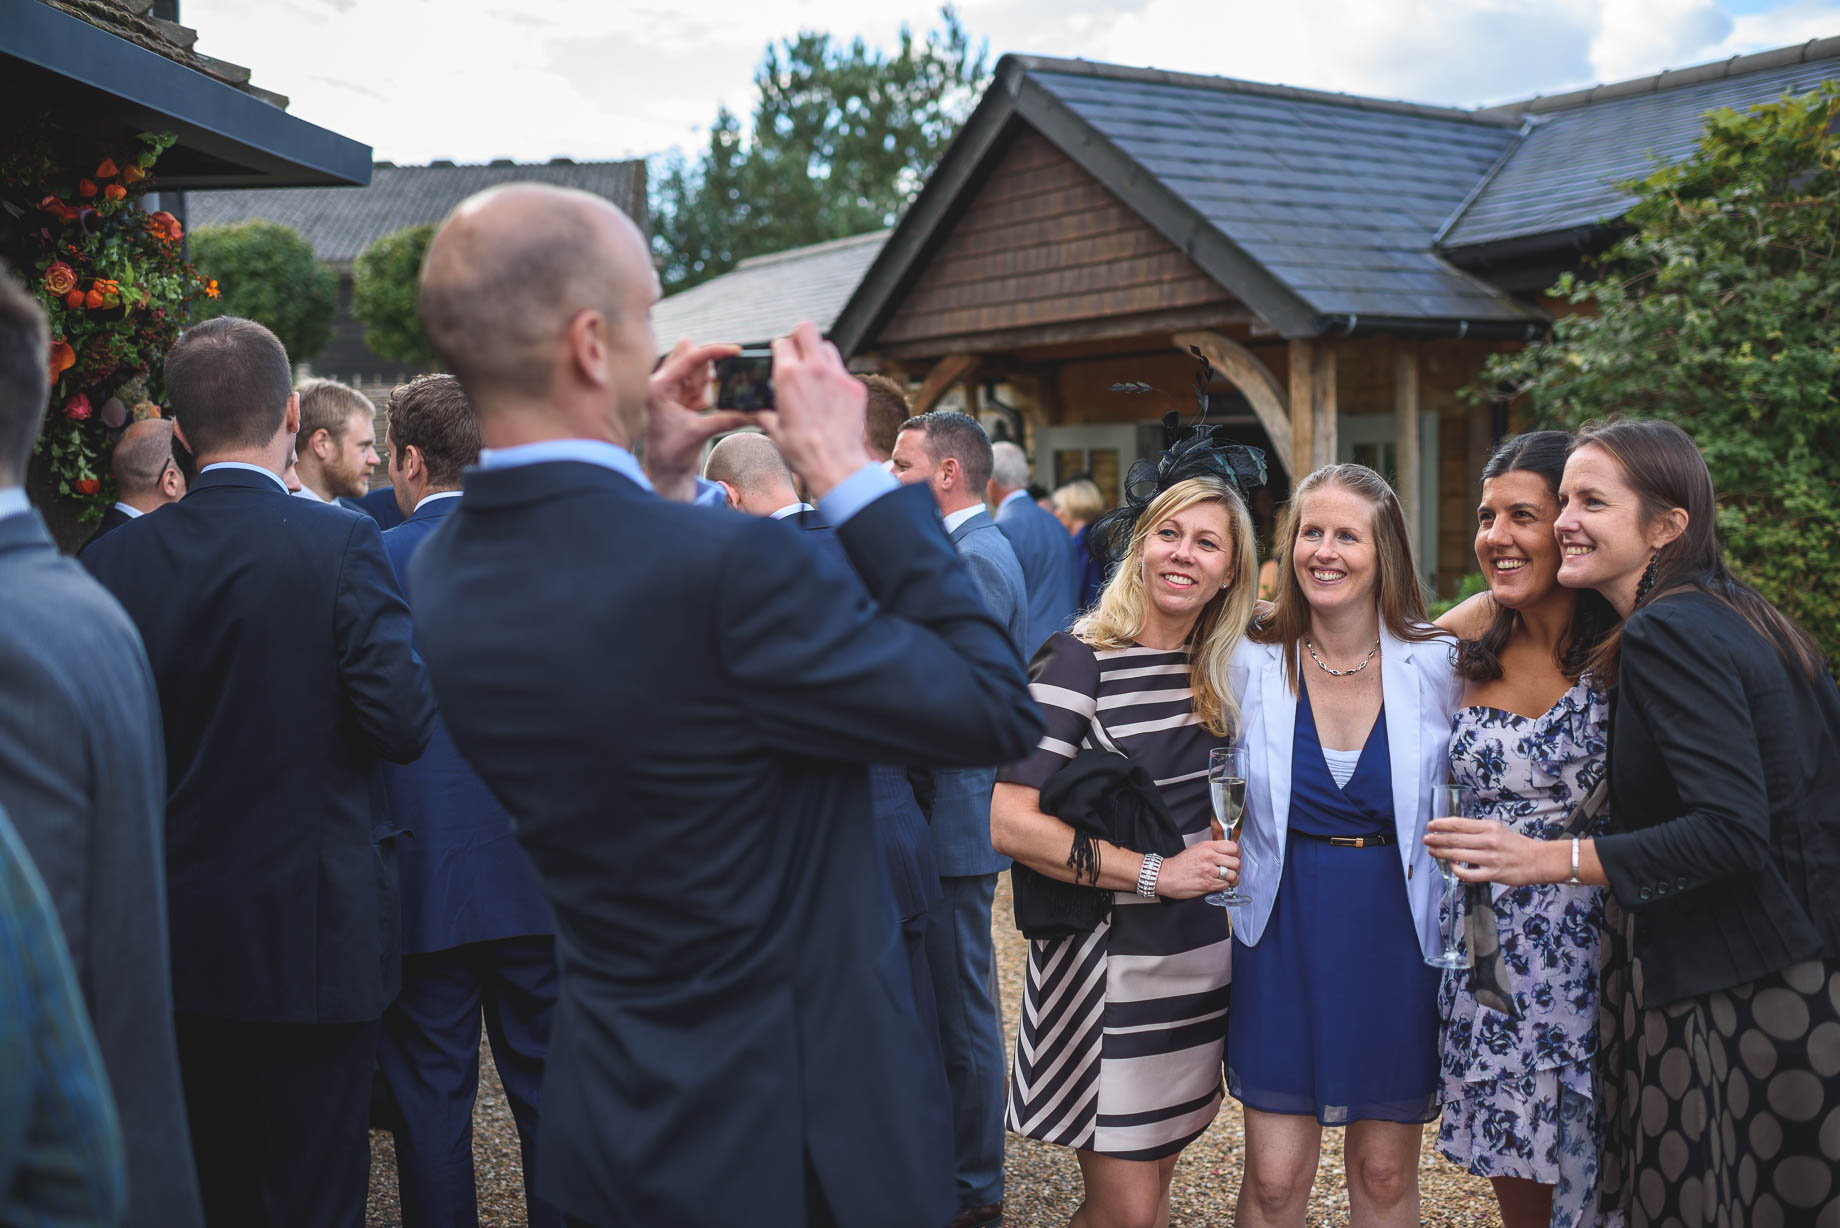 Gate Street Barn wedding photography - Guy Collier - Claire and Andy (119 of 192)